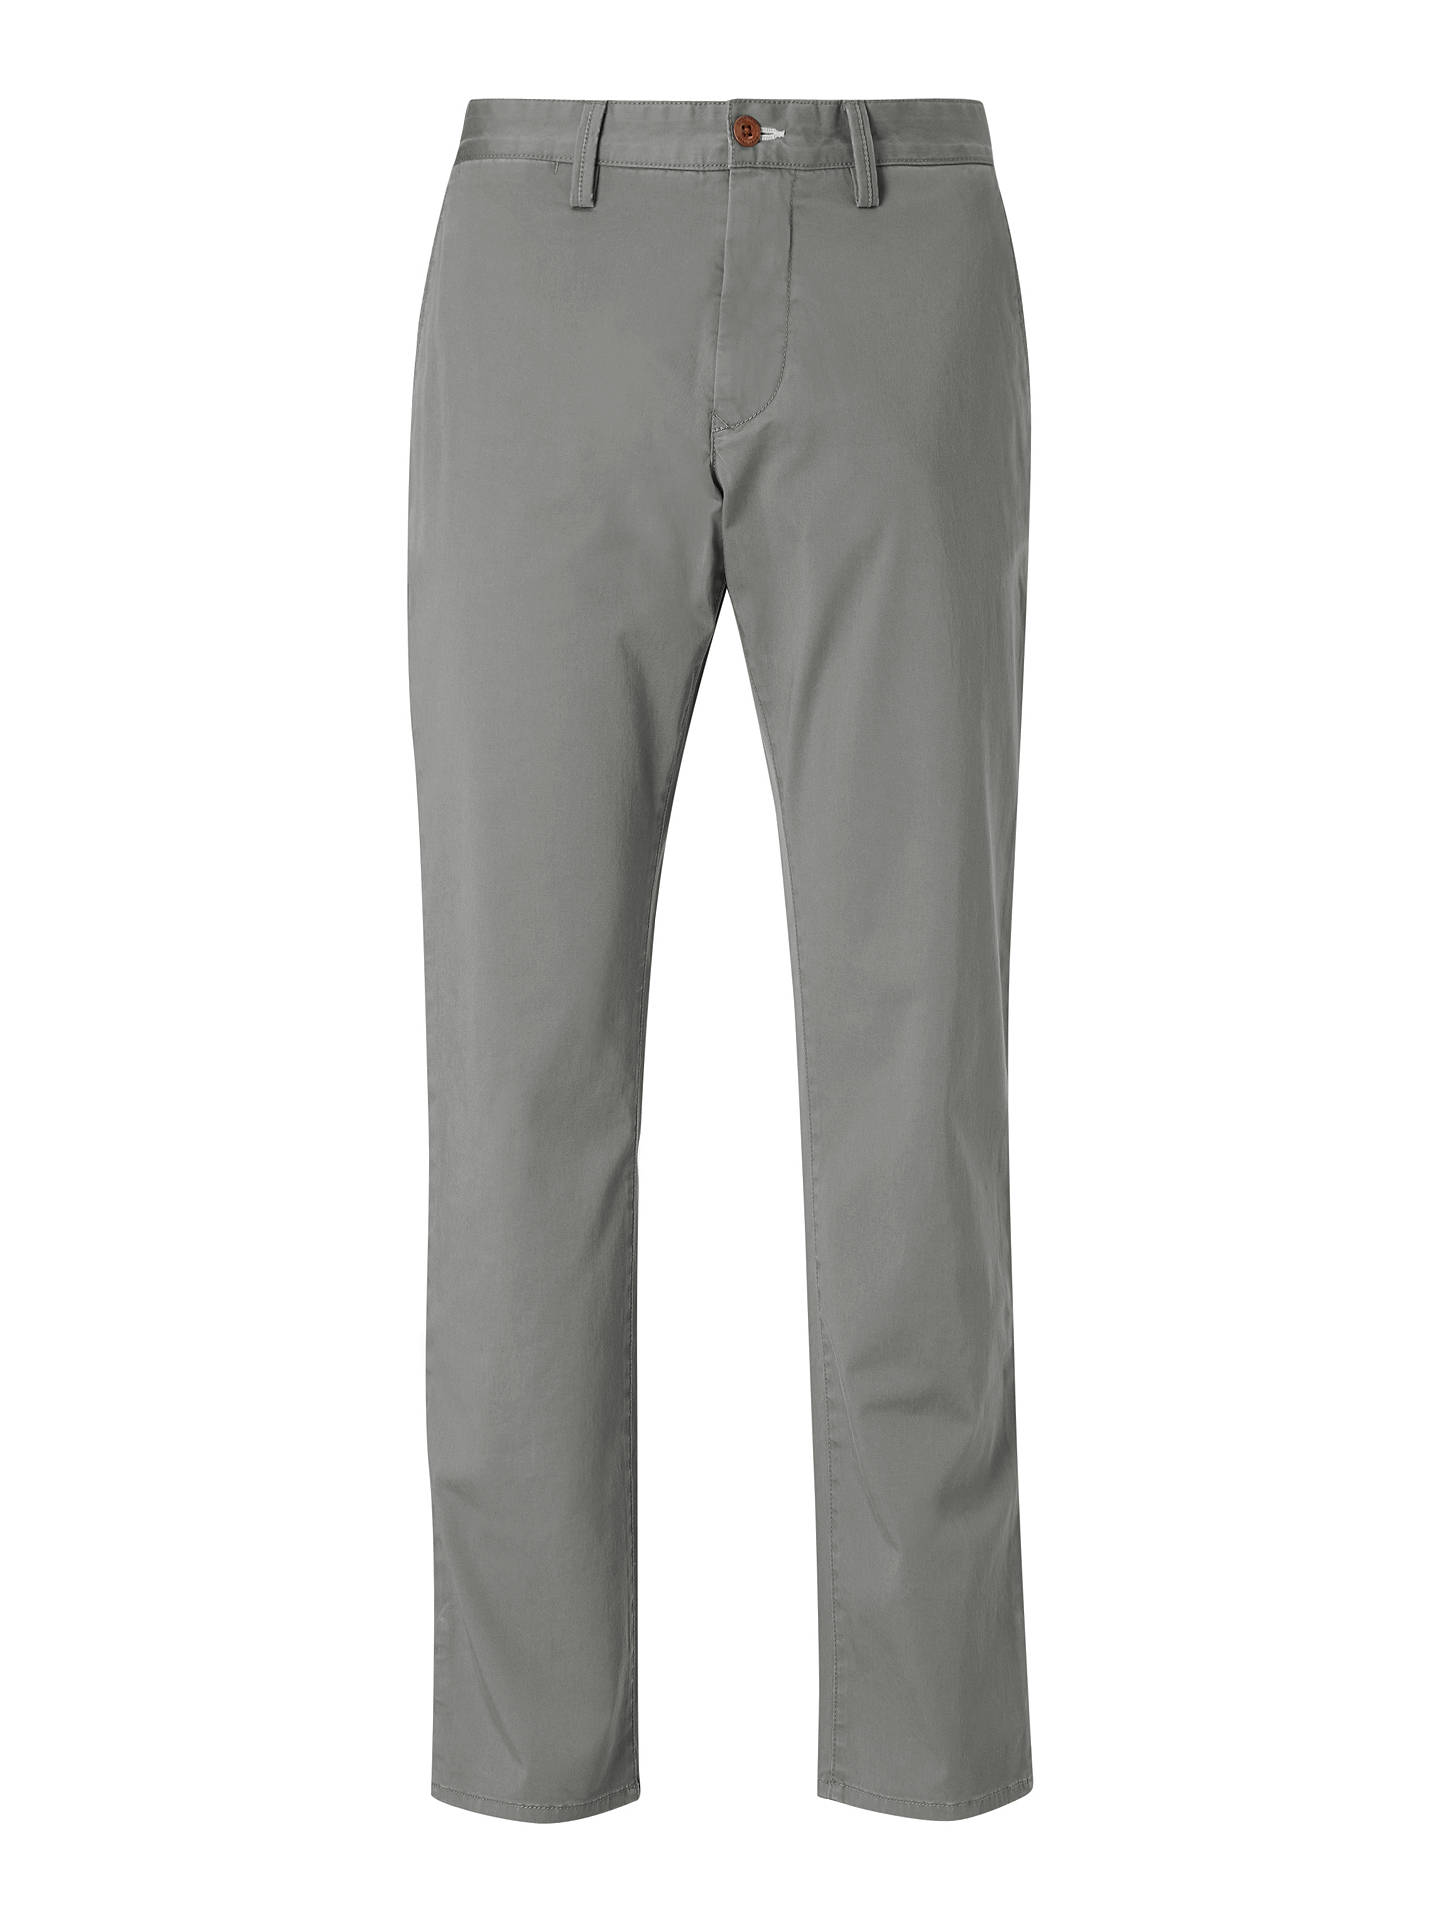 Buy GANT Regular Twill Chino Trousers, Grey, 36R Online at johnlewis.com